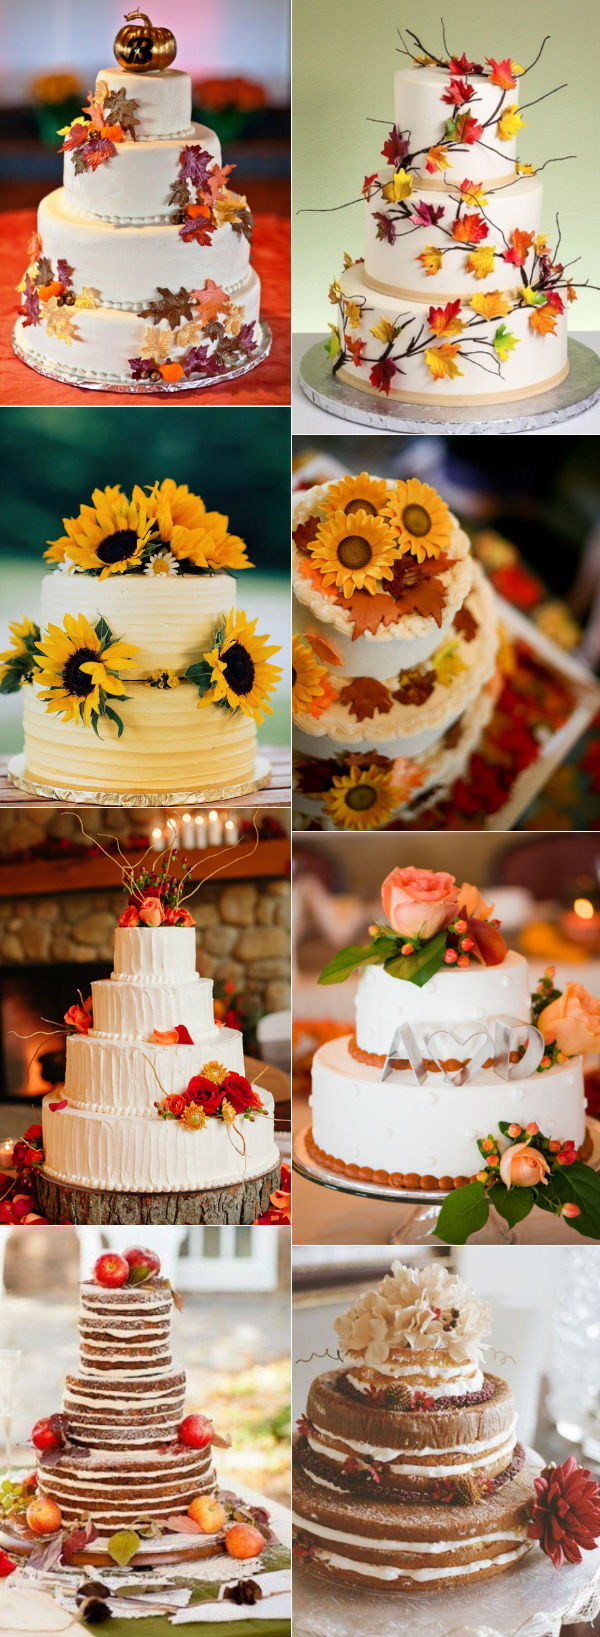 Fall Wedding Cakes Pictures  31 Beautiful Naked Wedding Cake Ideas For 2016